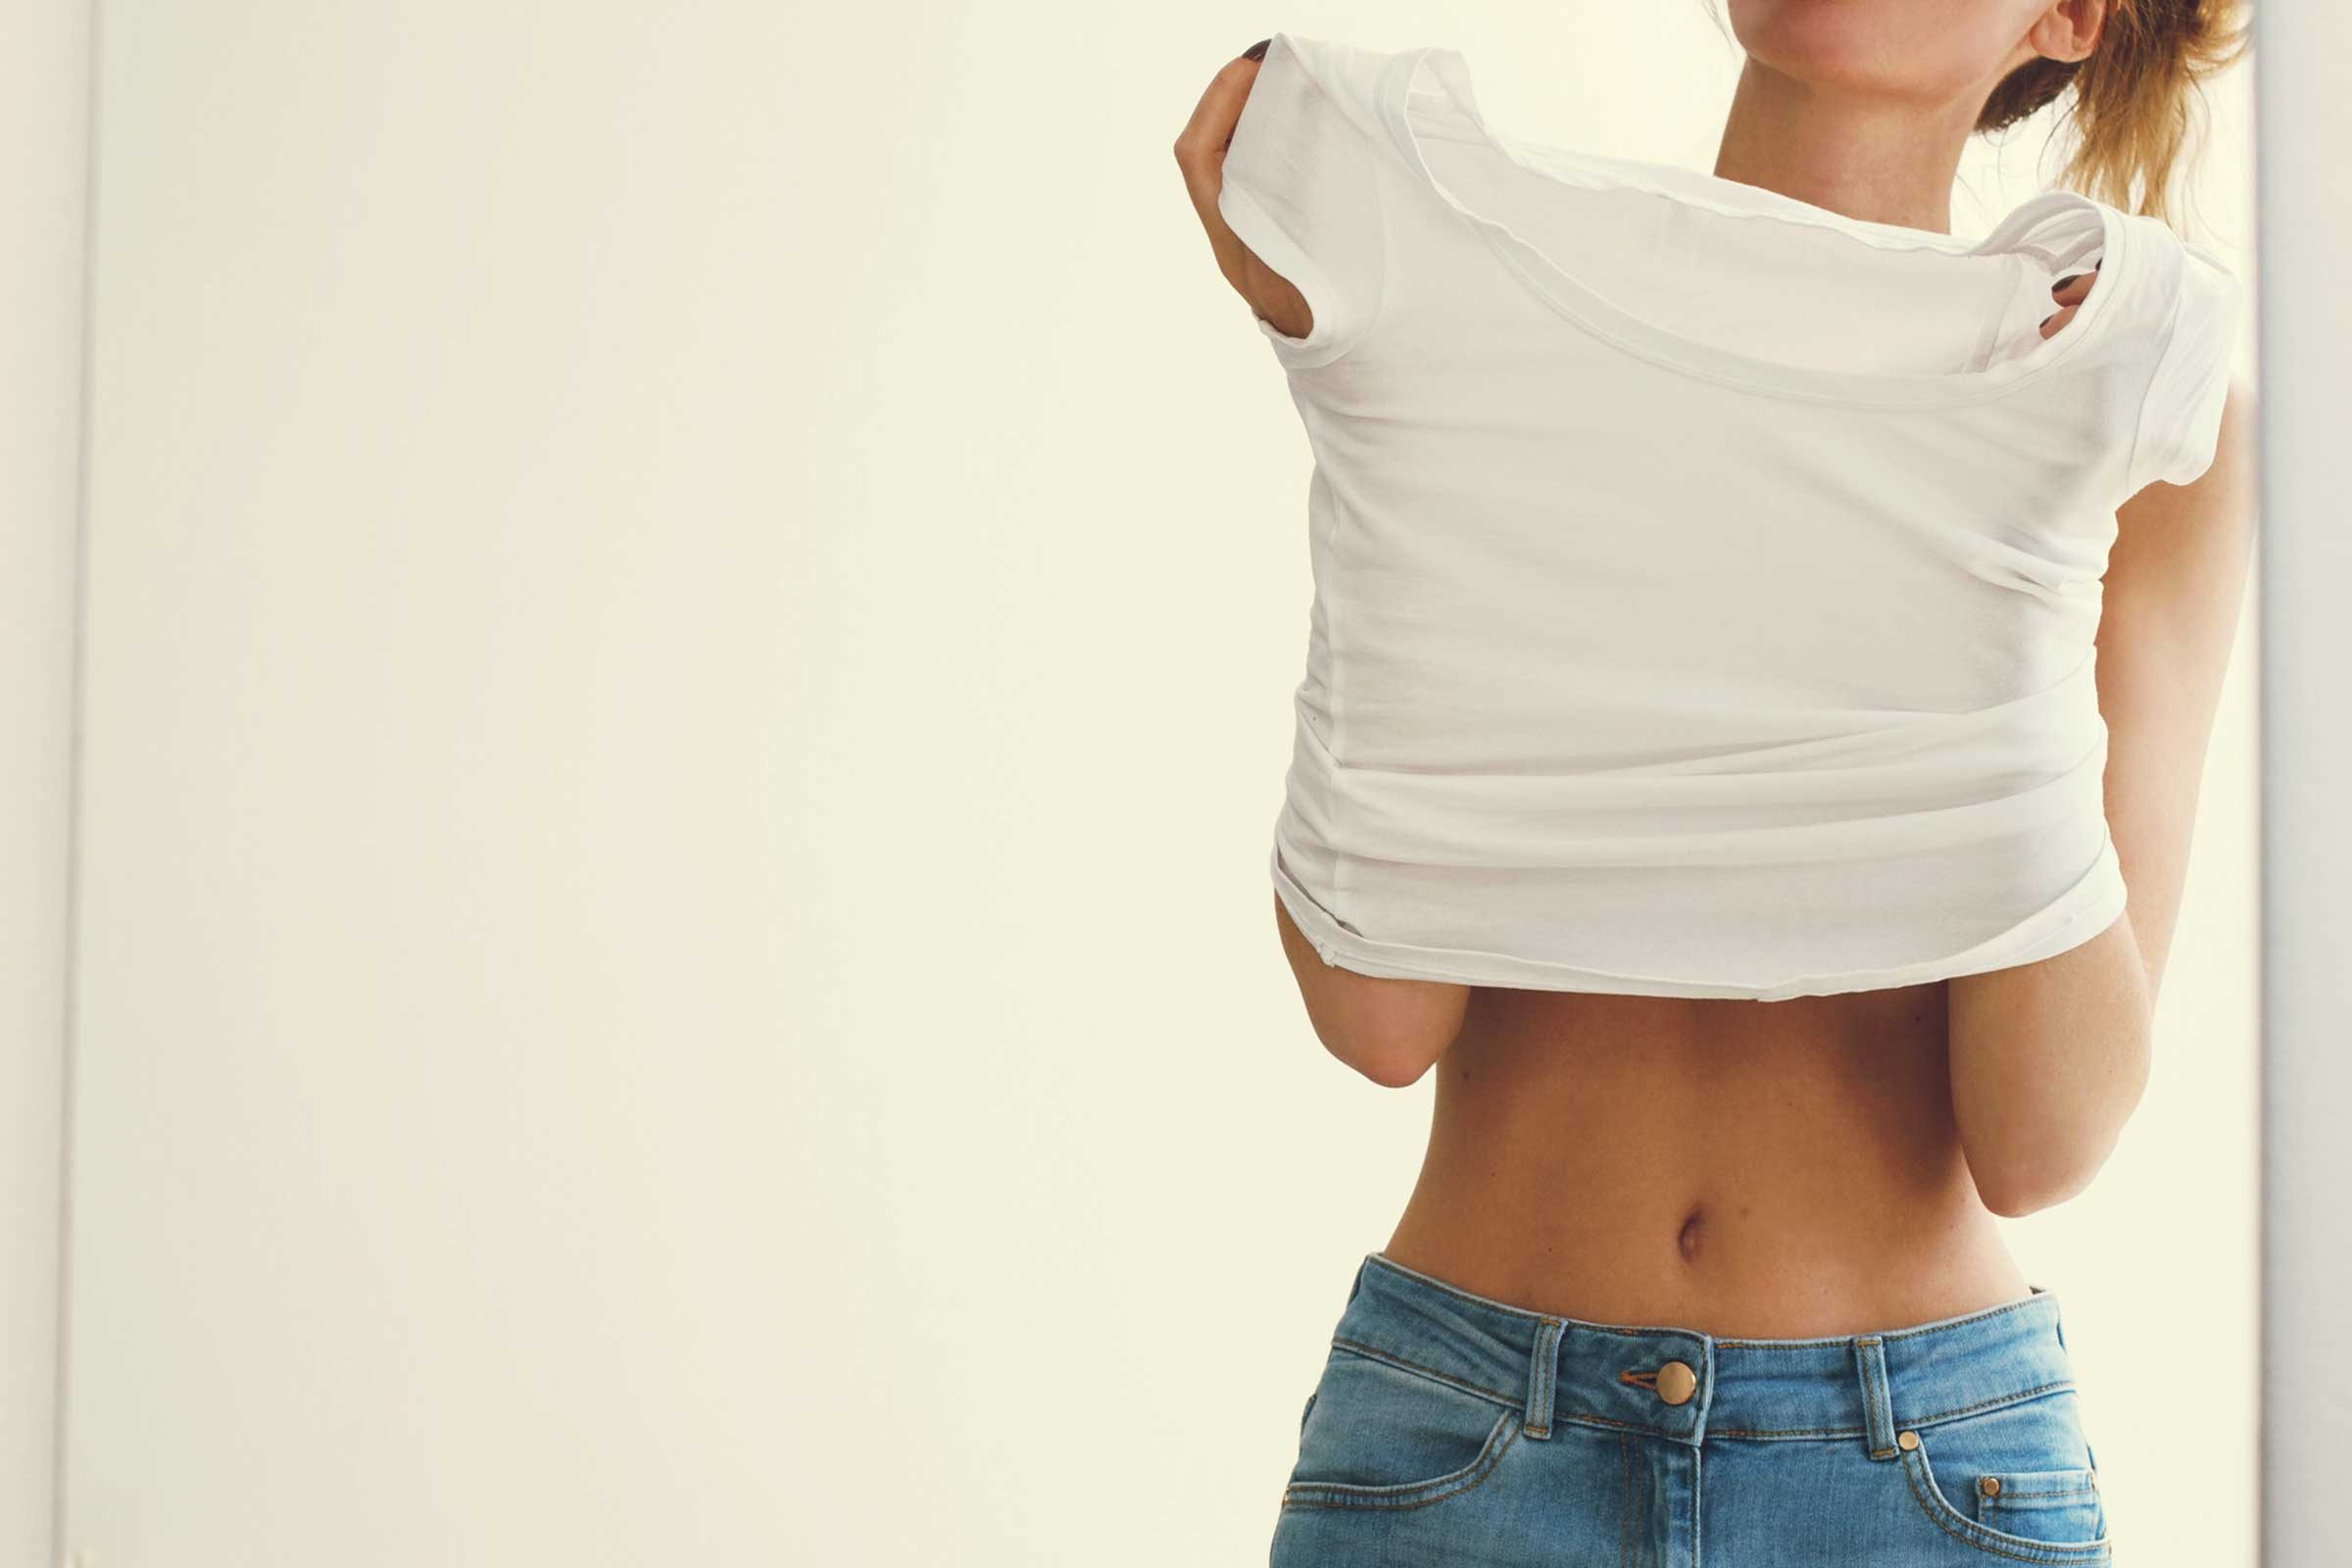 How To Lose Love Handles The Healthy